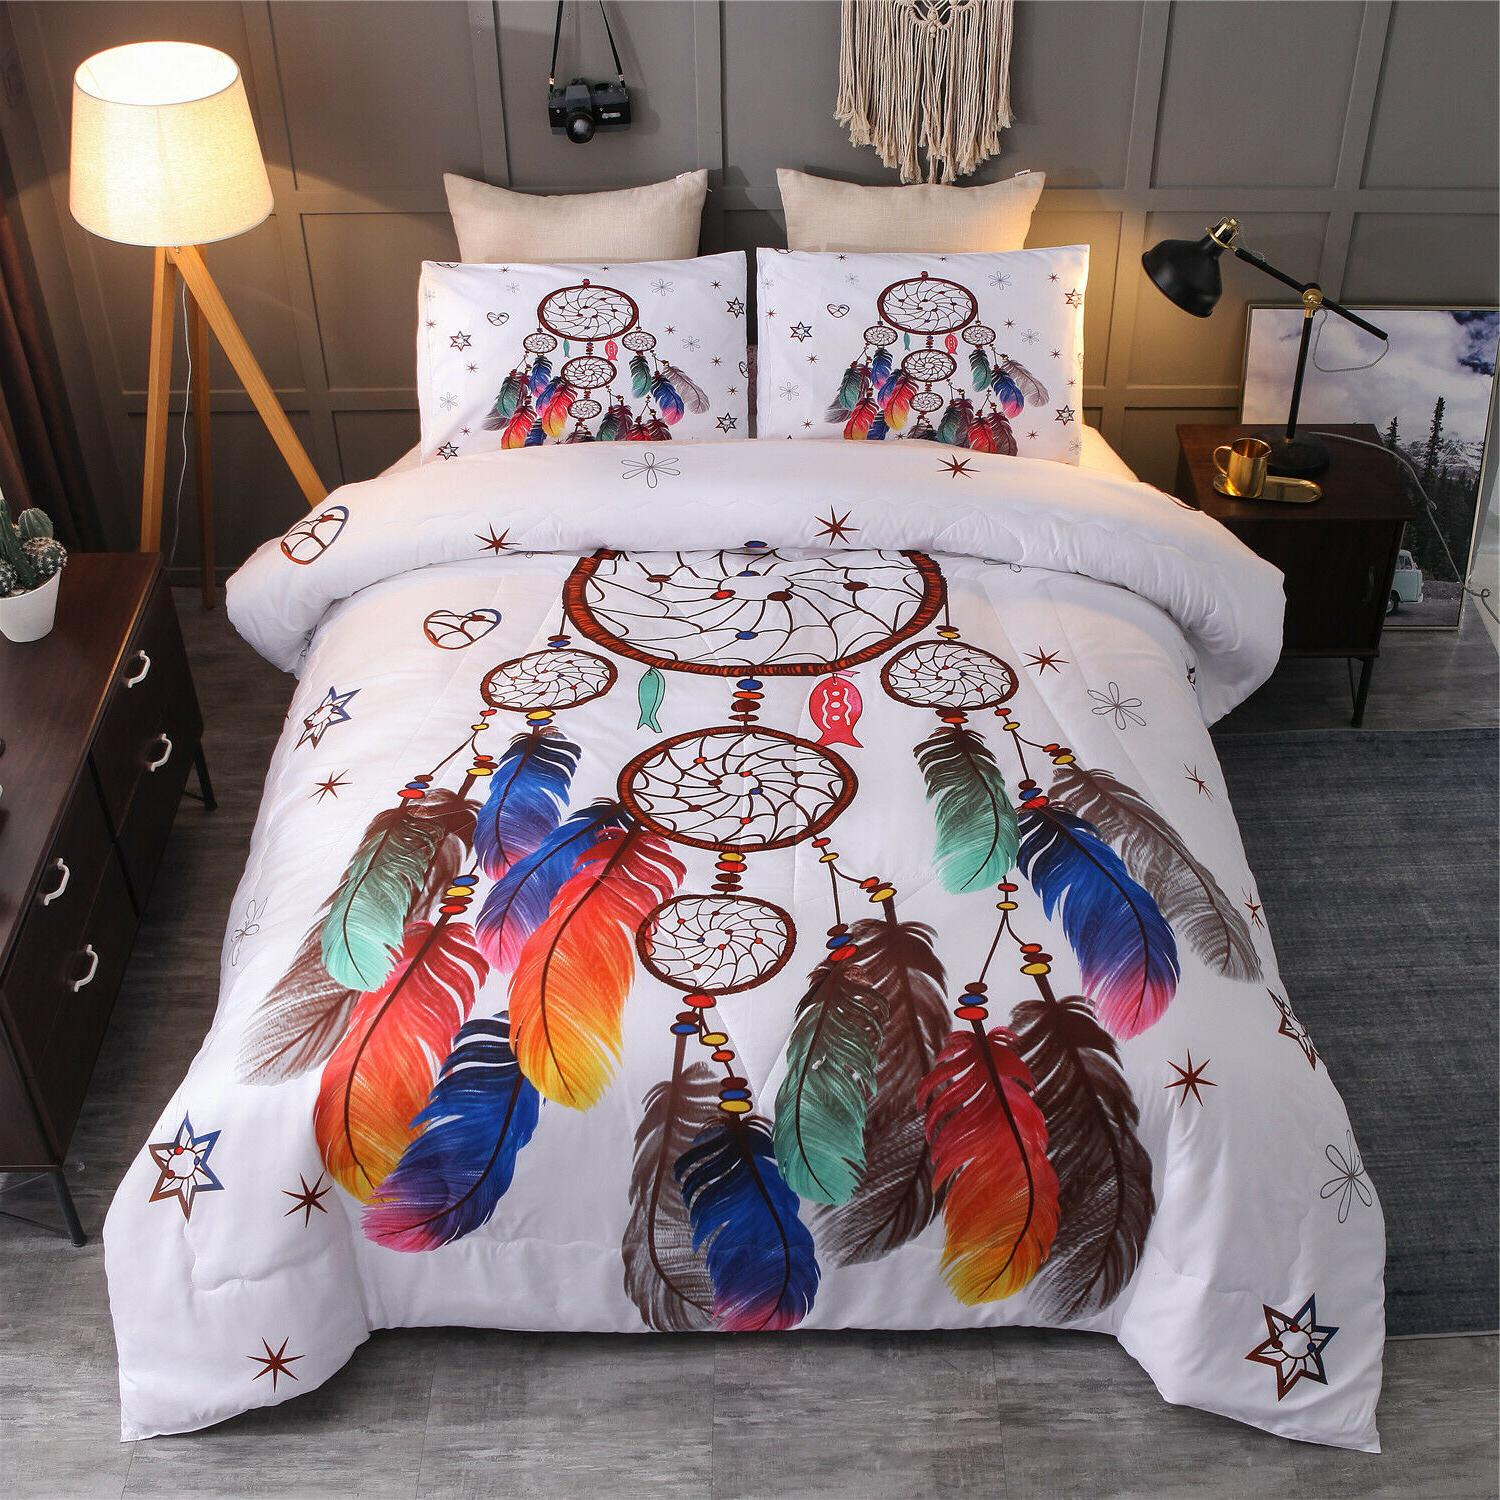 Bohemian Set Queen Bedding